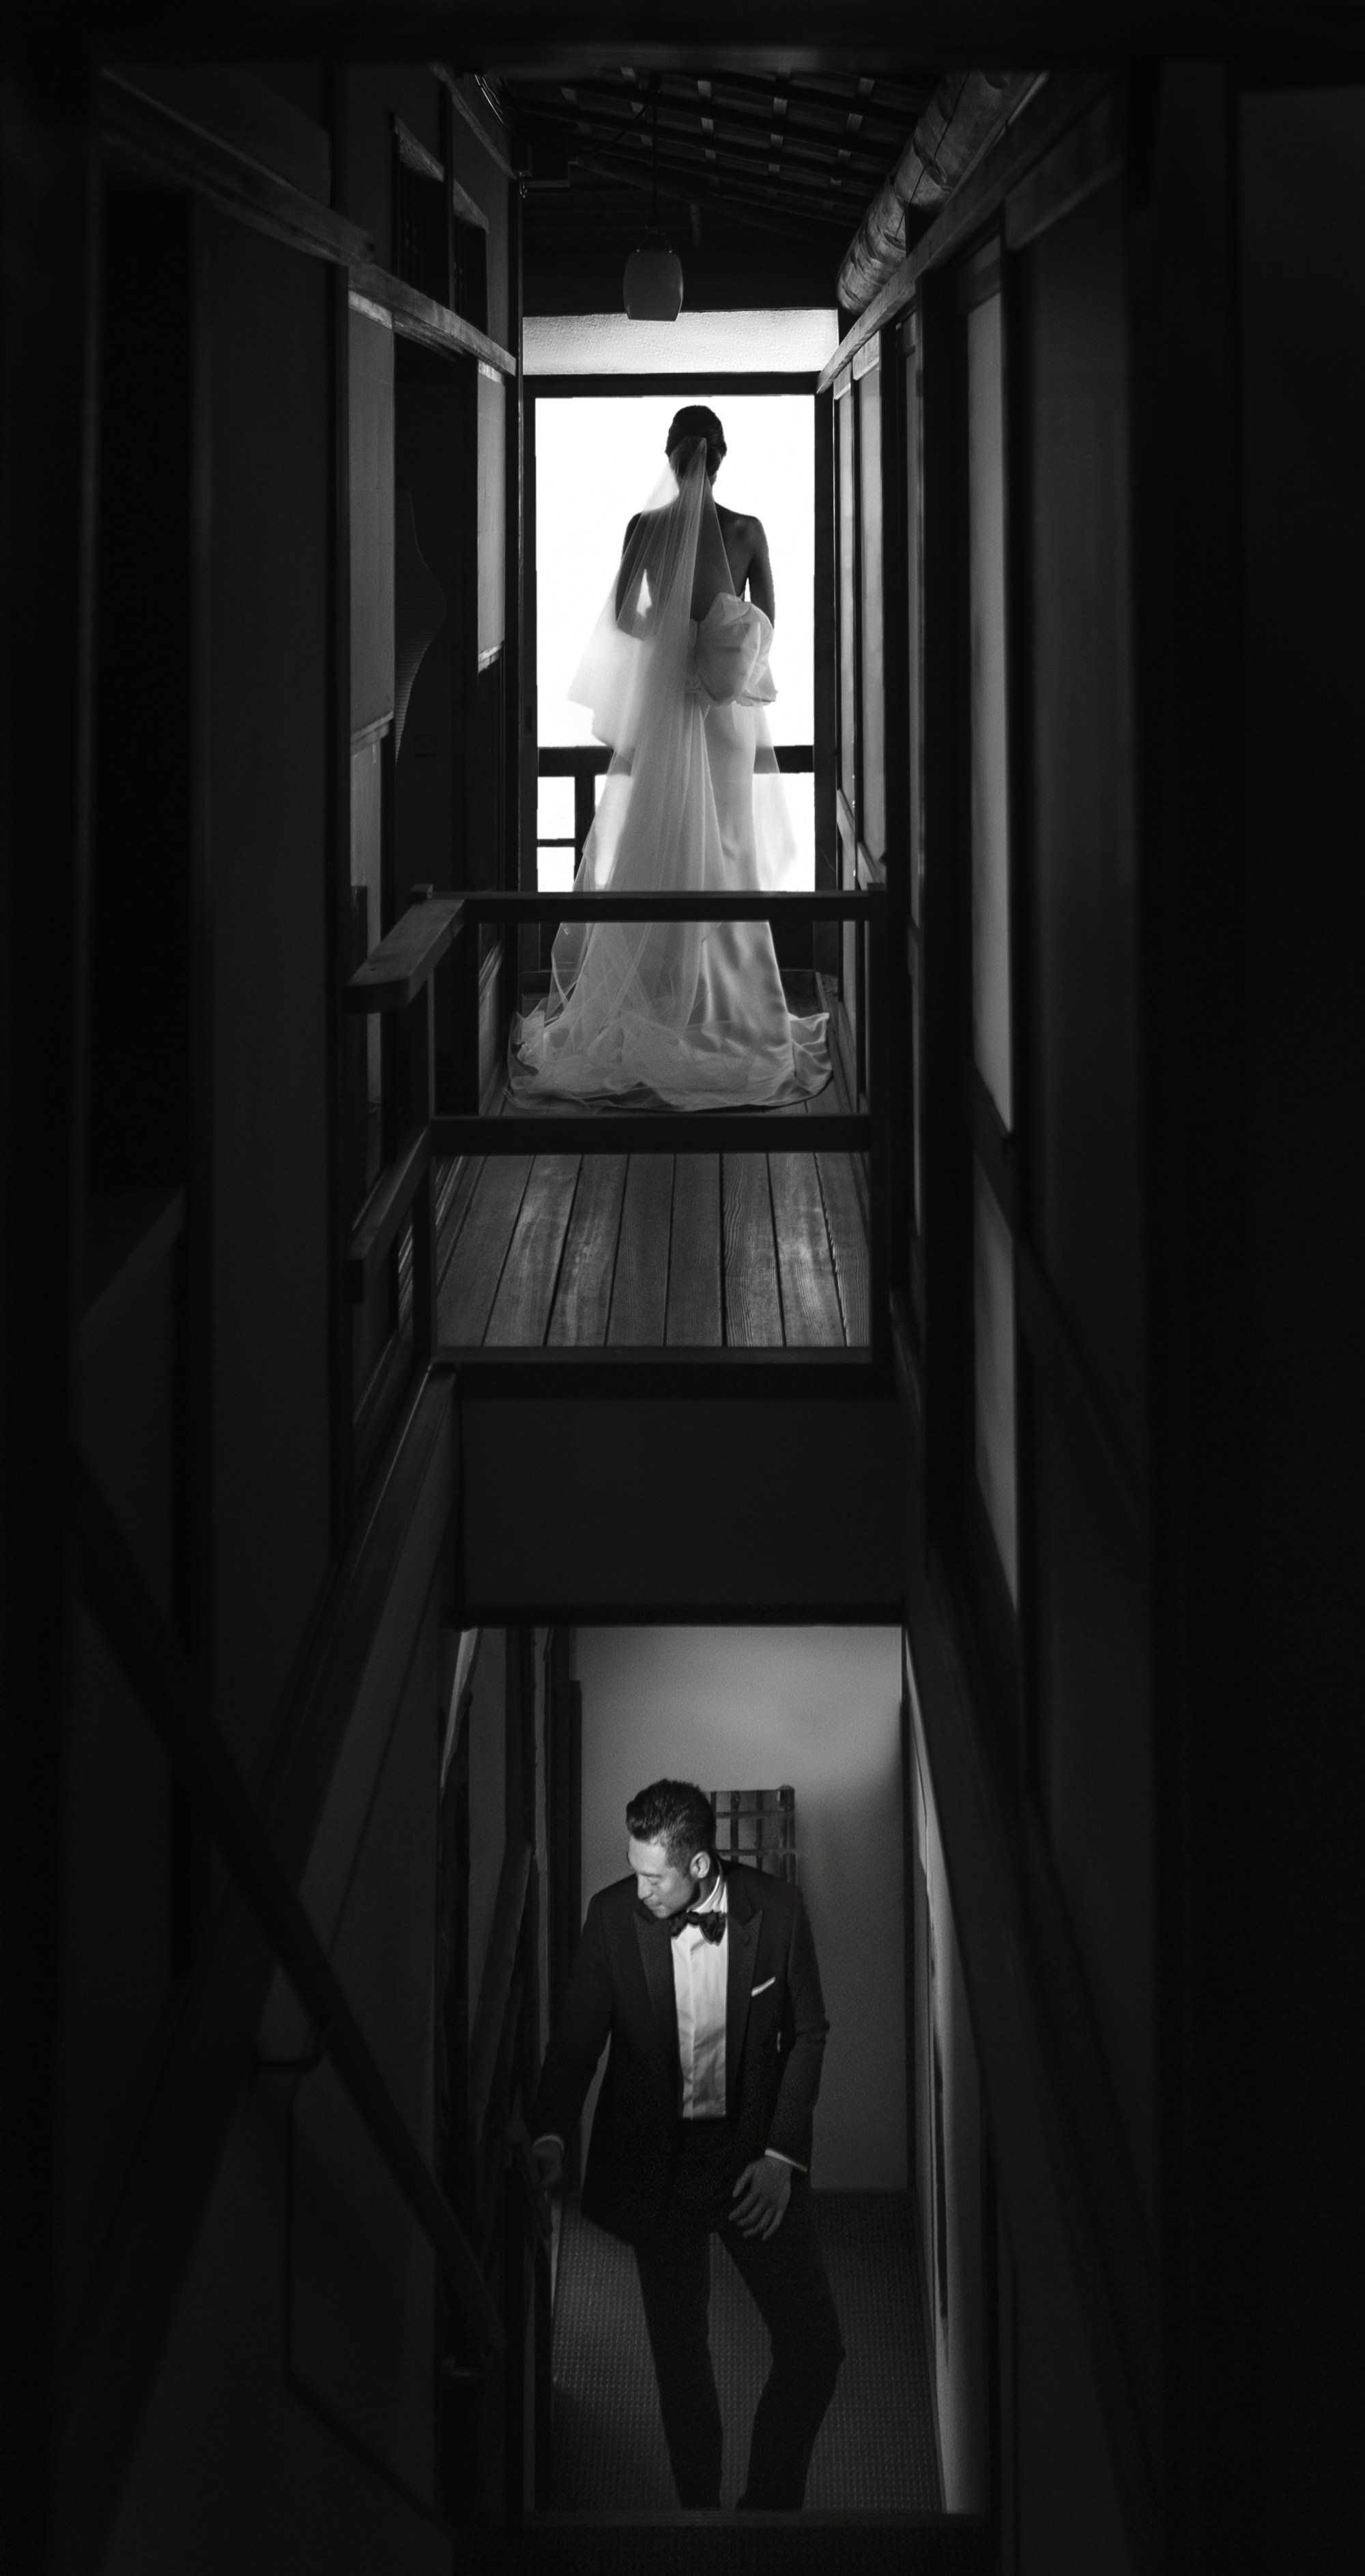 Groom ascending stairs towards bride on balcony  -  photo by 37 Frames - Japa